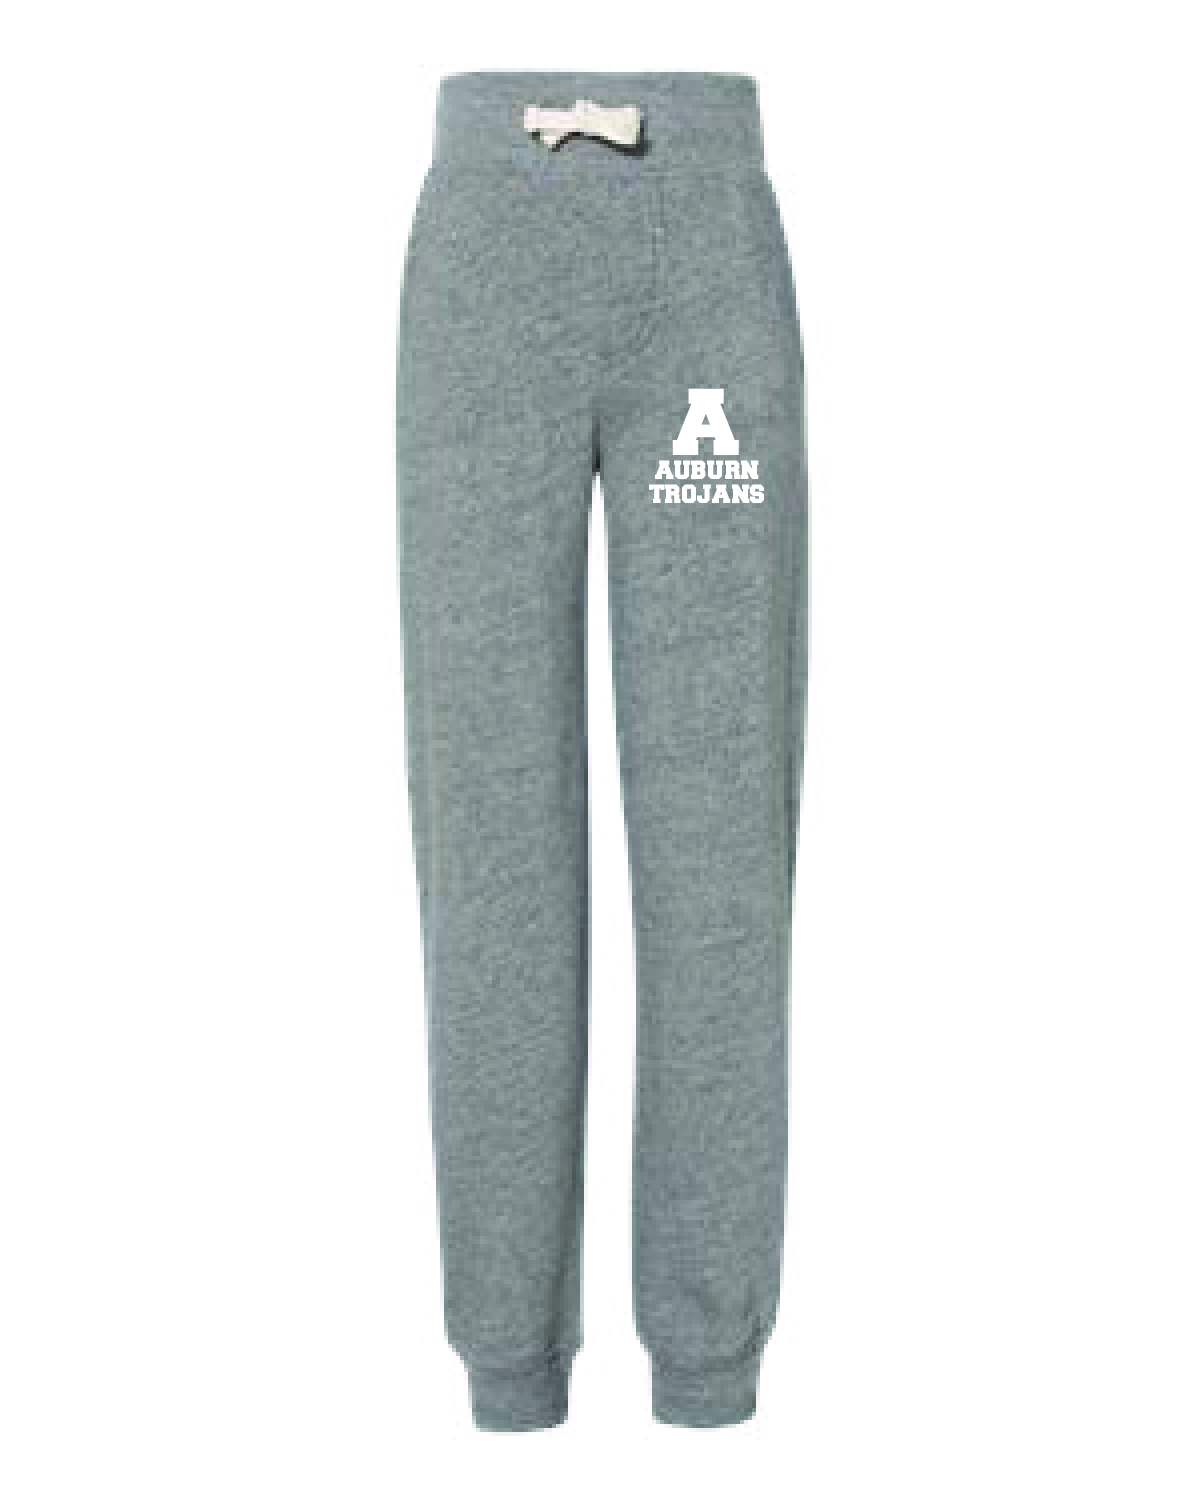 Alternative - Youth Jogger Pants (YOUTH)